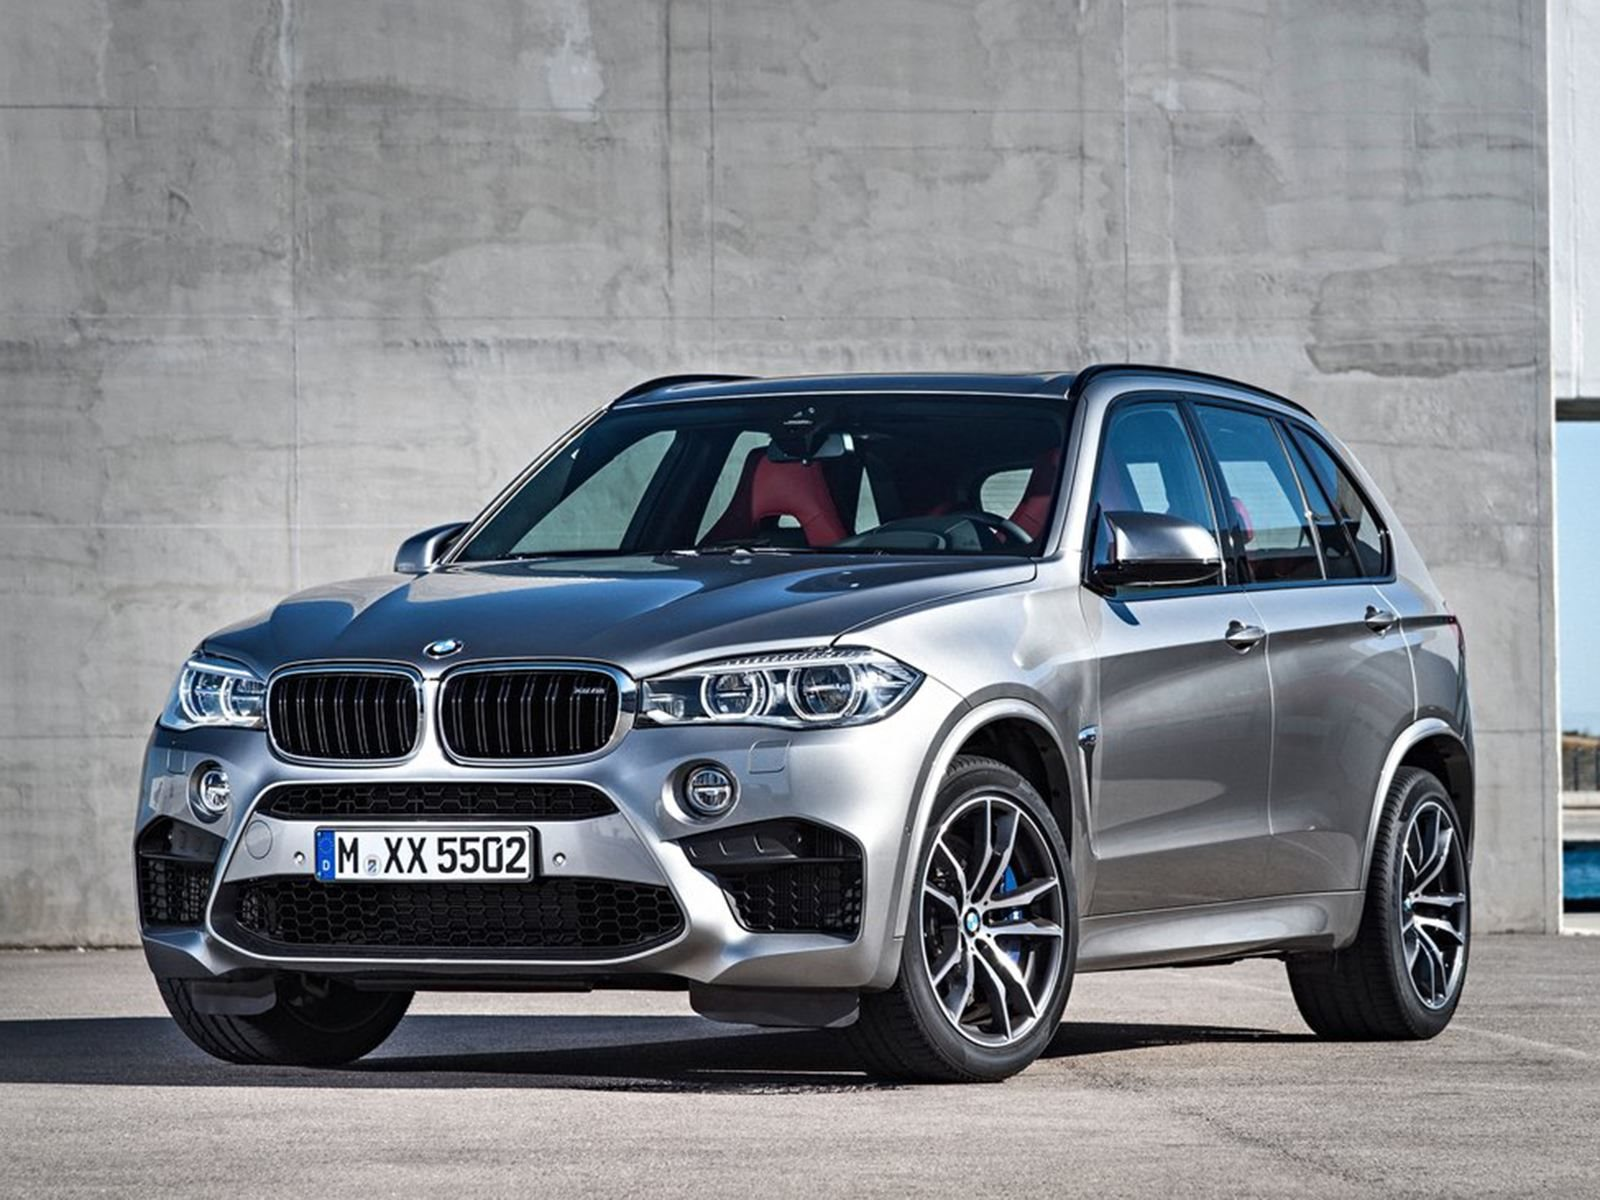 the next-generation bmw x5 m could debut early in 2020 - carbuzz